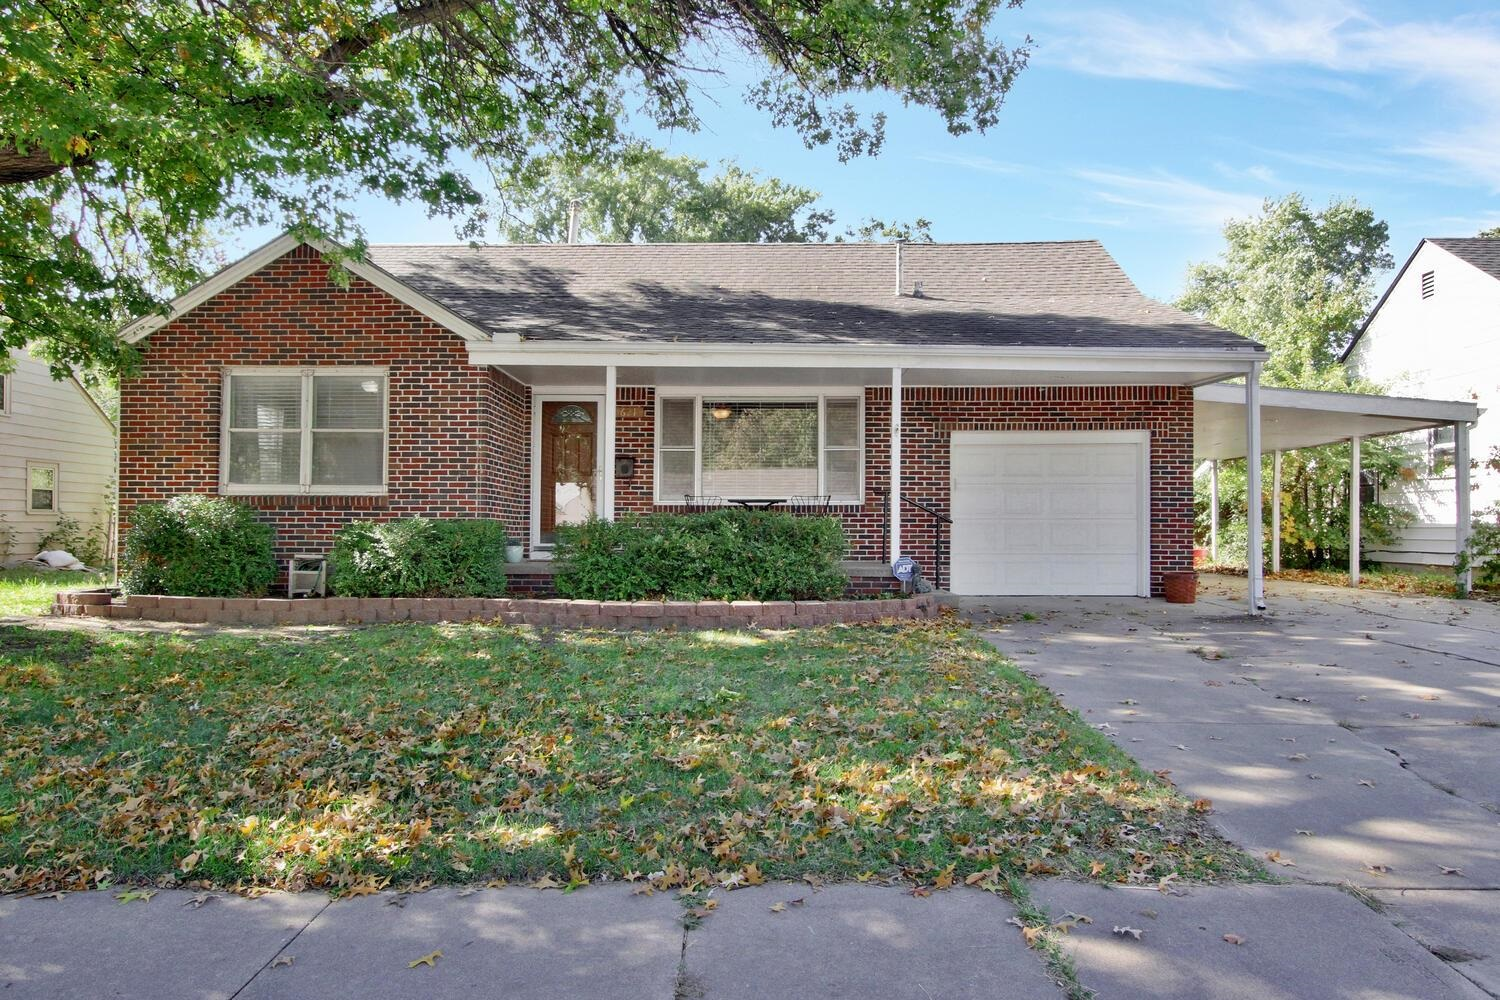 Beautiful 1.5 Story Home with 3BR, 1.5 BA, 1 car attached garage plus Carport, updated kitchen, hard